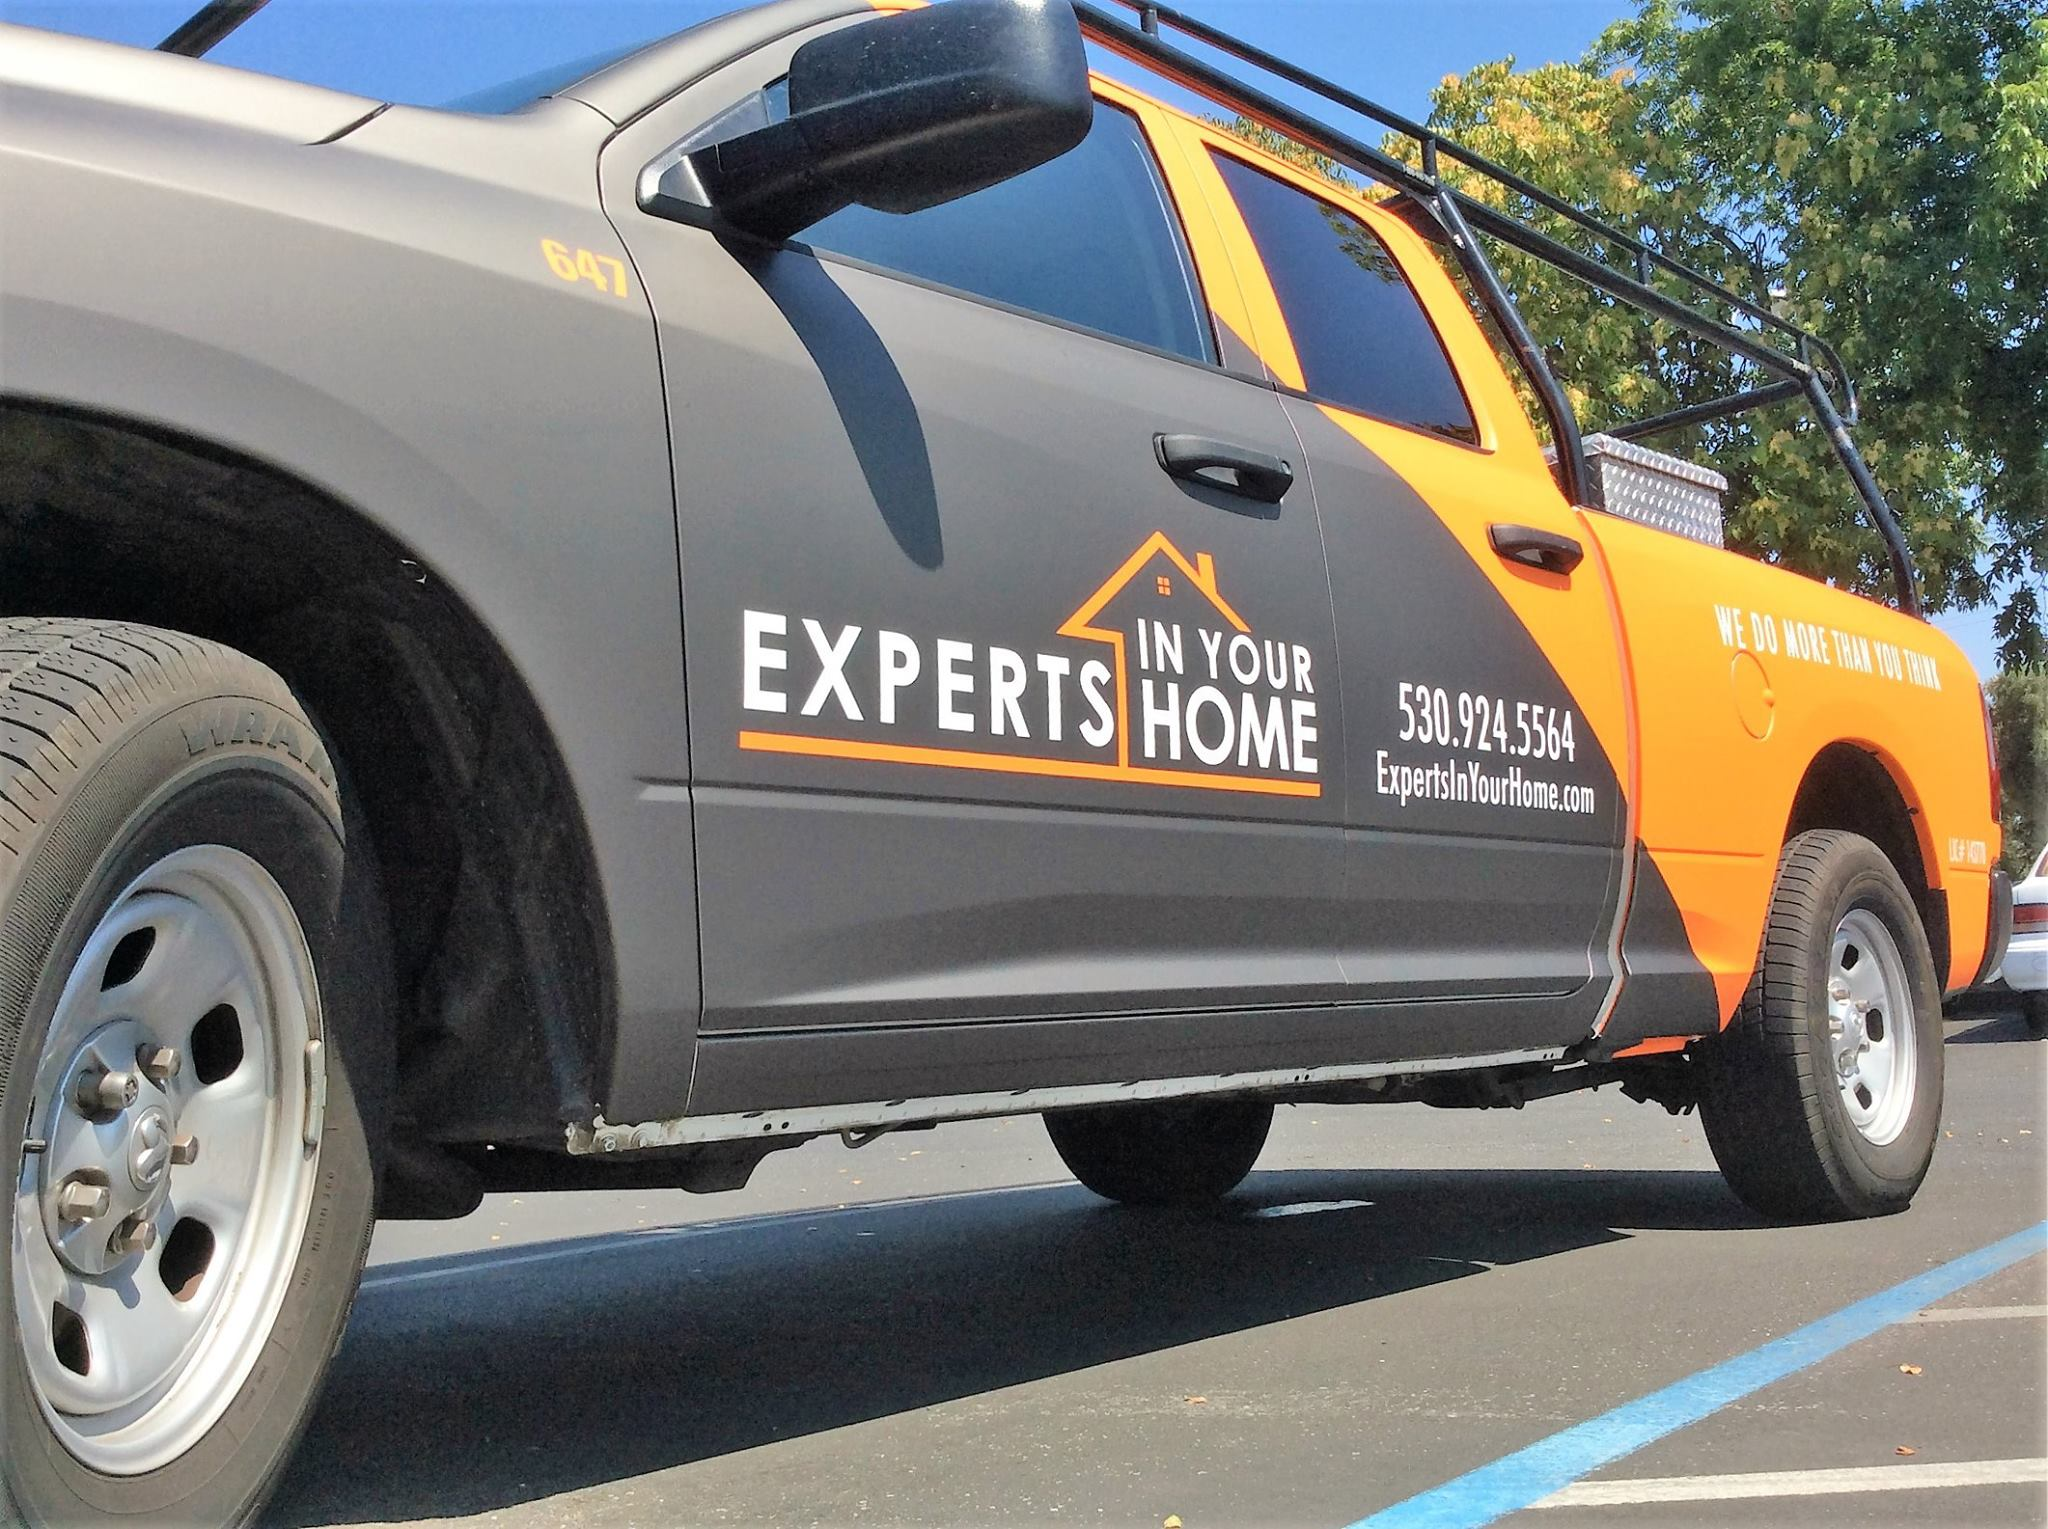 Experts In Your Home Truck